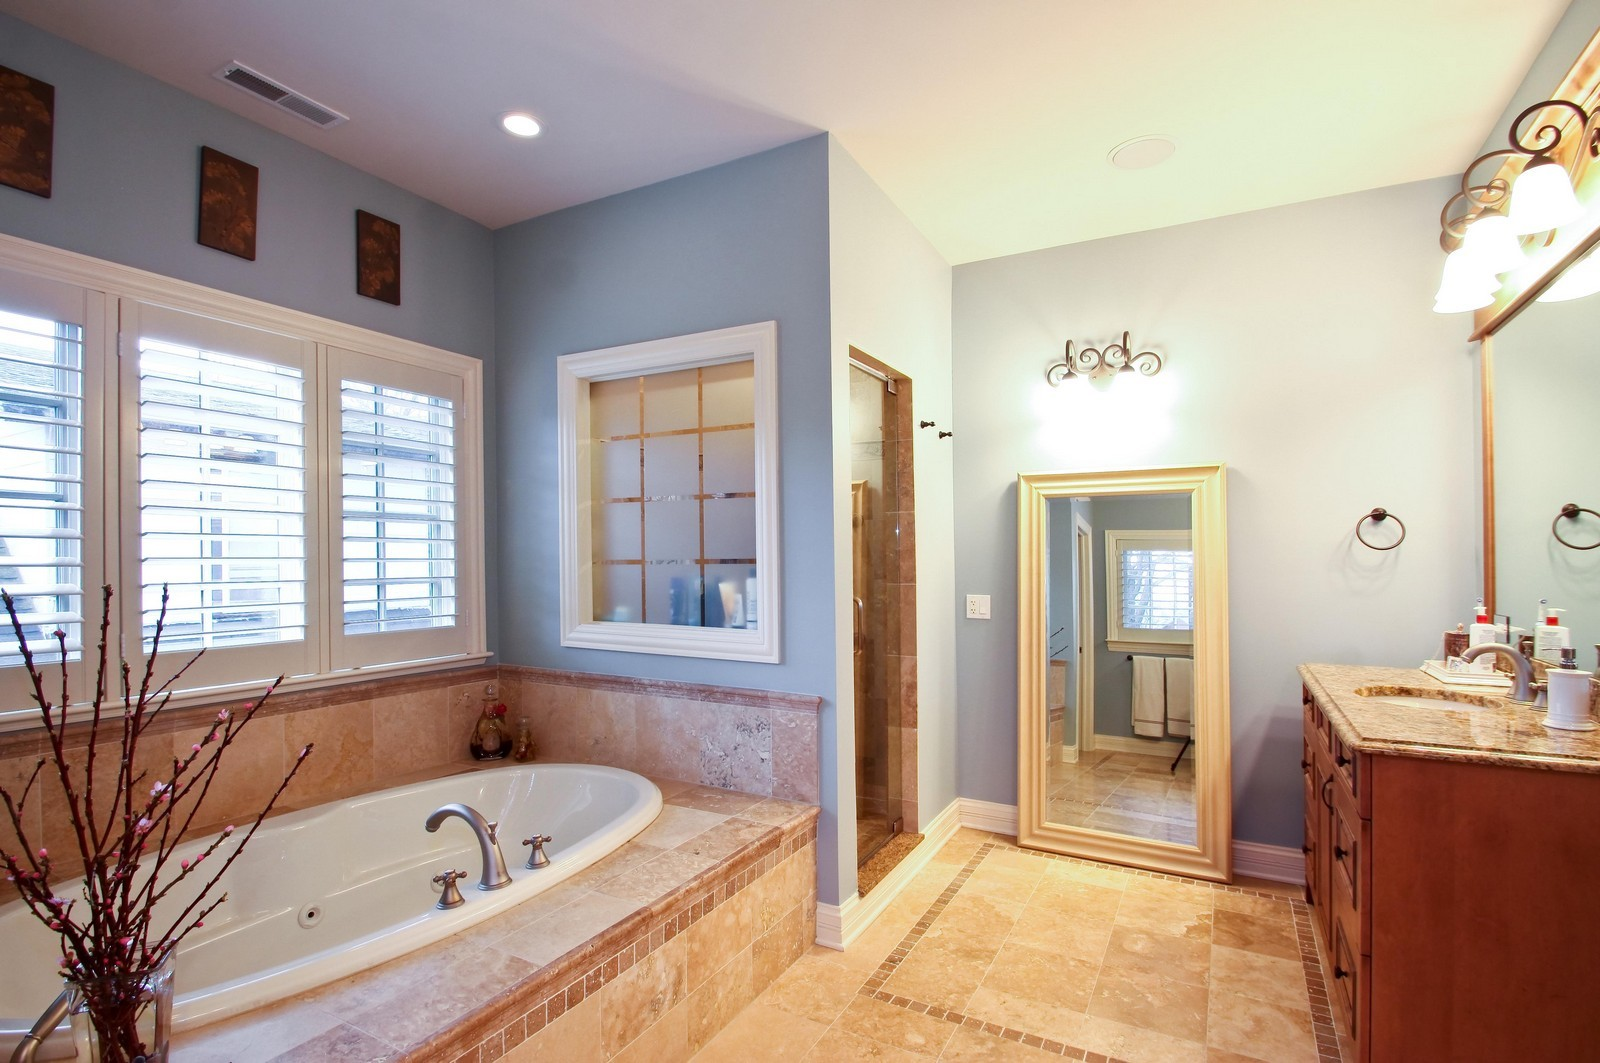 Real Estate Photography - 431 Adams Ave, Glencoe, IL, 60022 - Retreat & relax in the spa-like master bath.